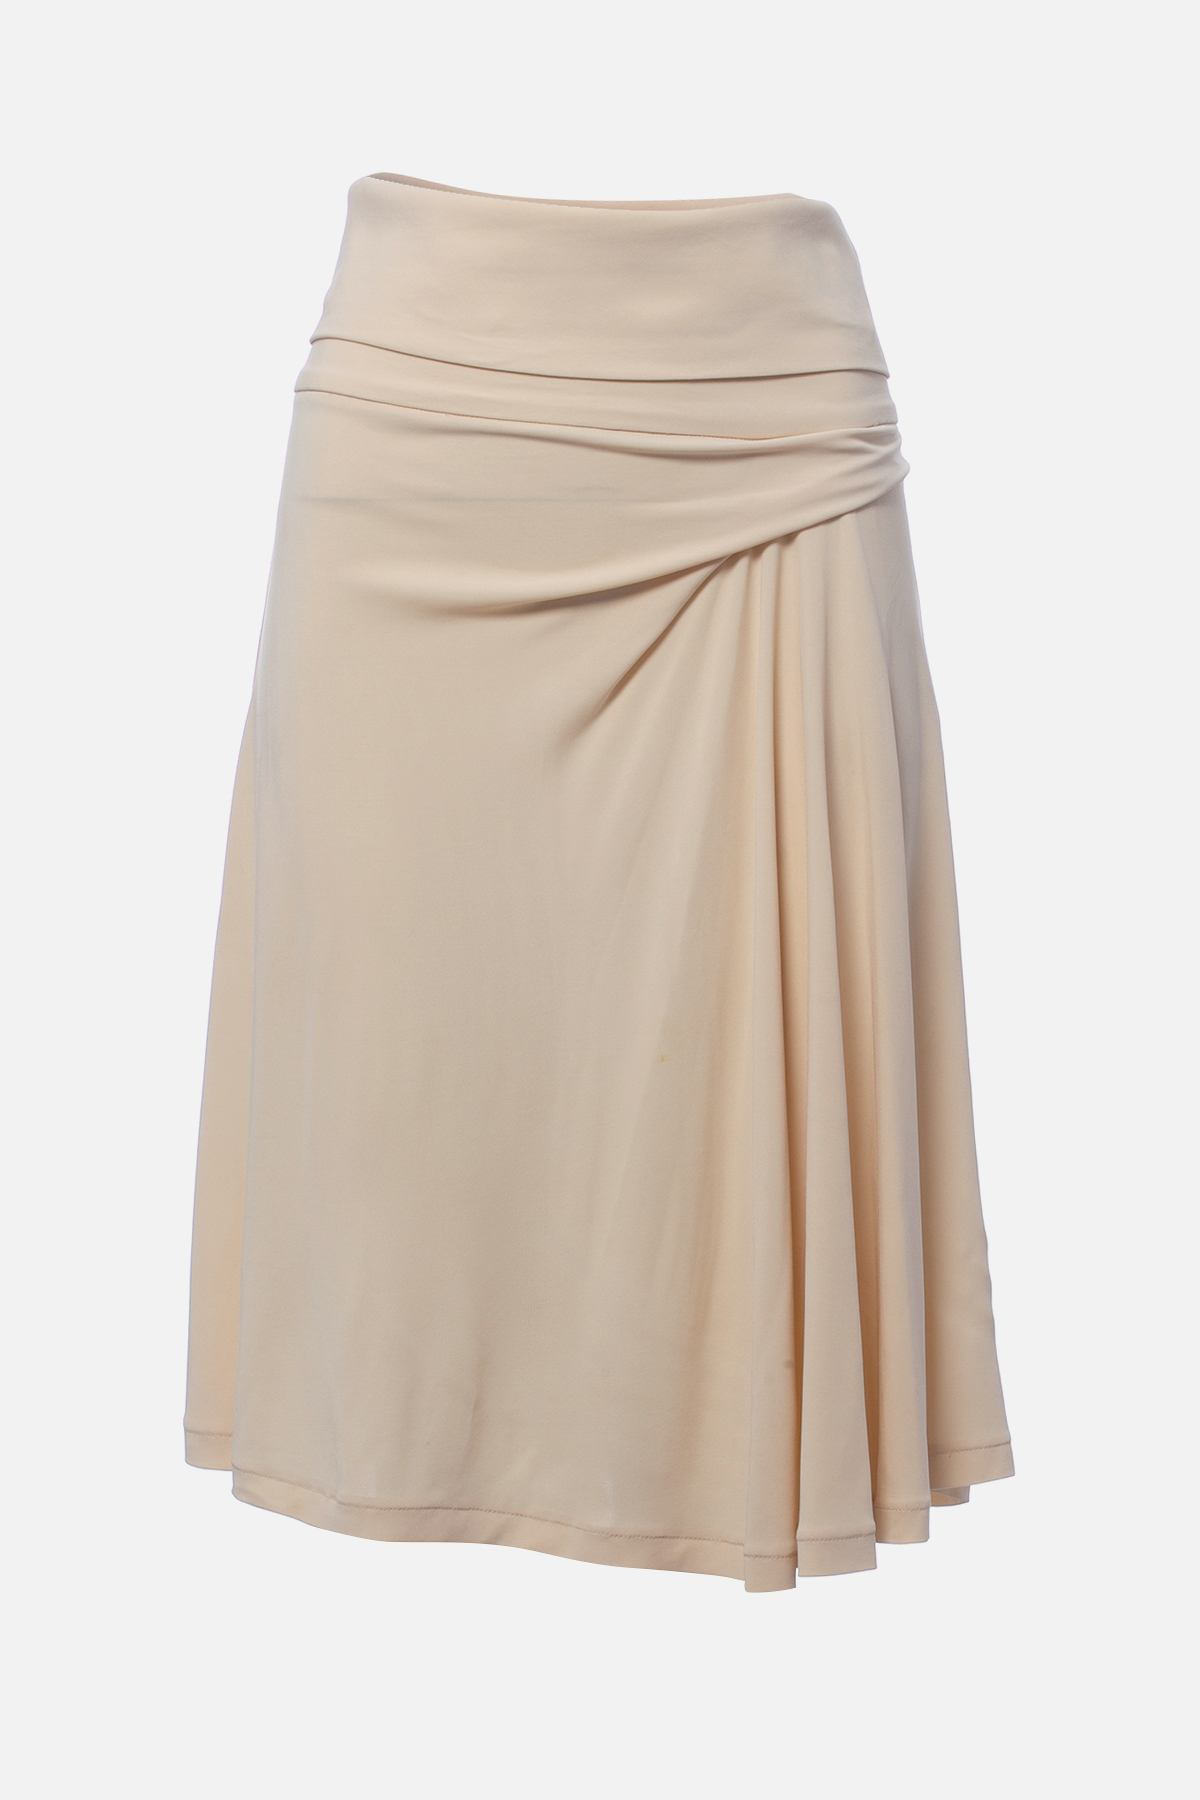 KNEE-LENGTH SKIRT